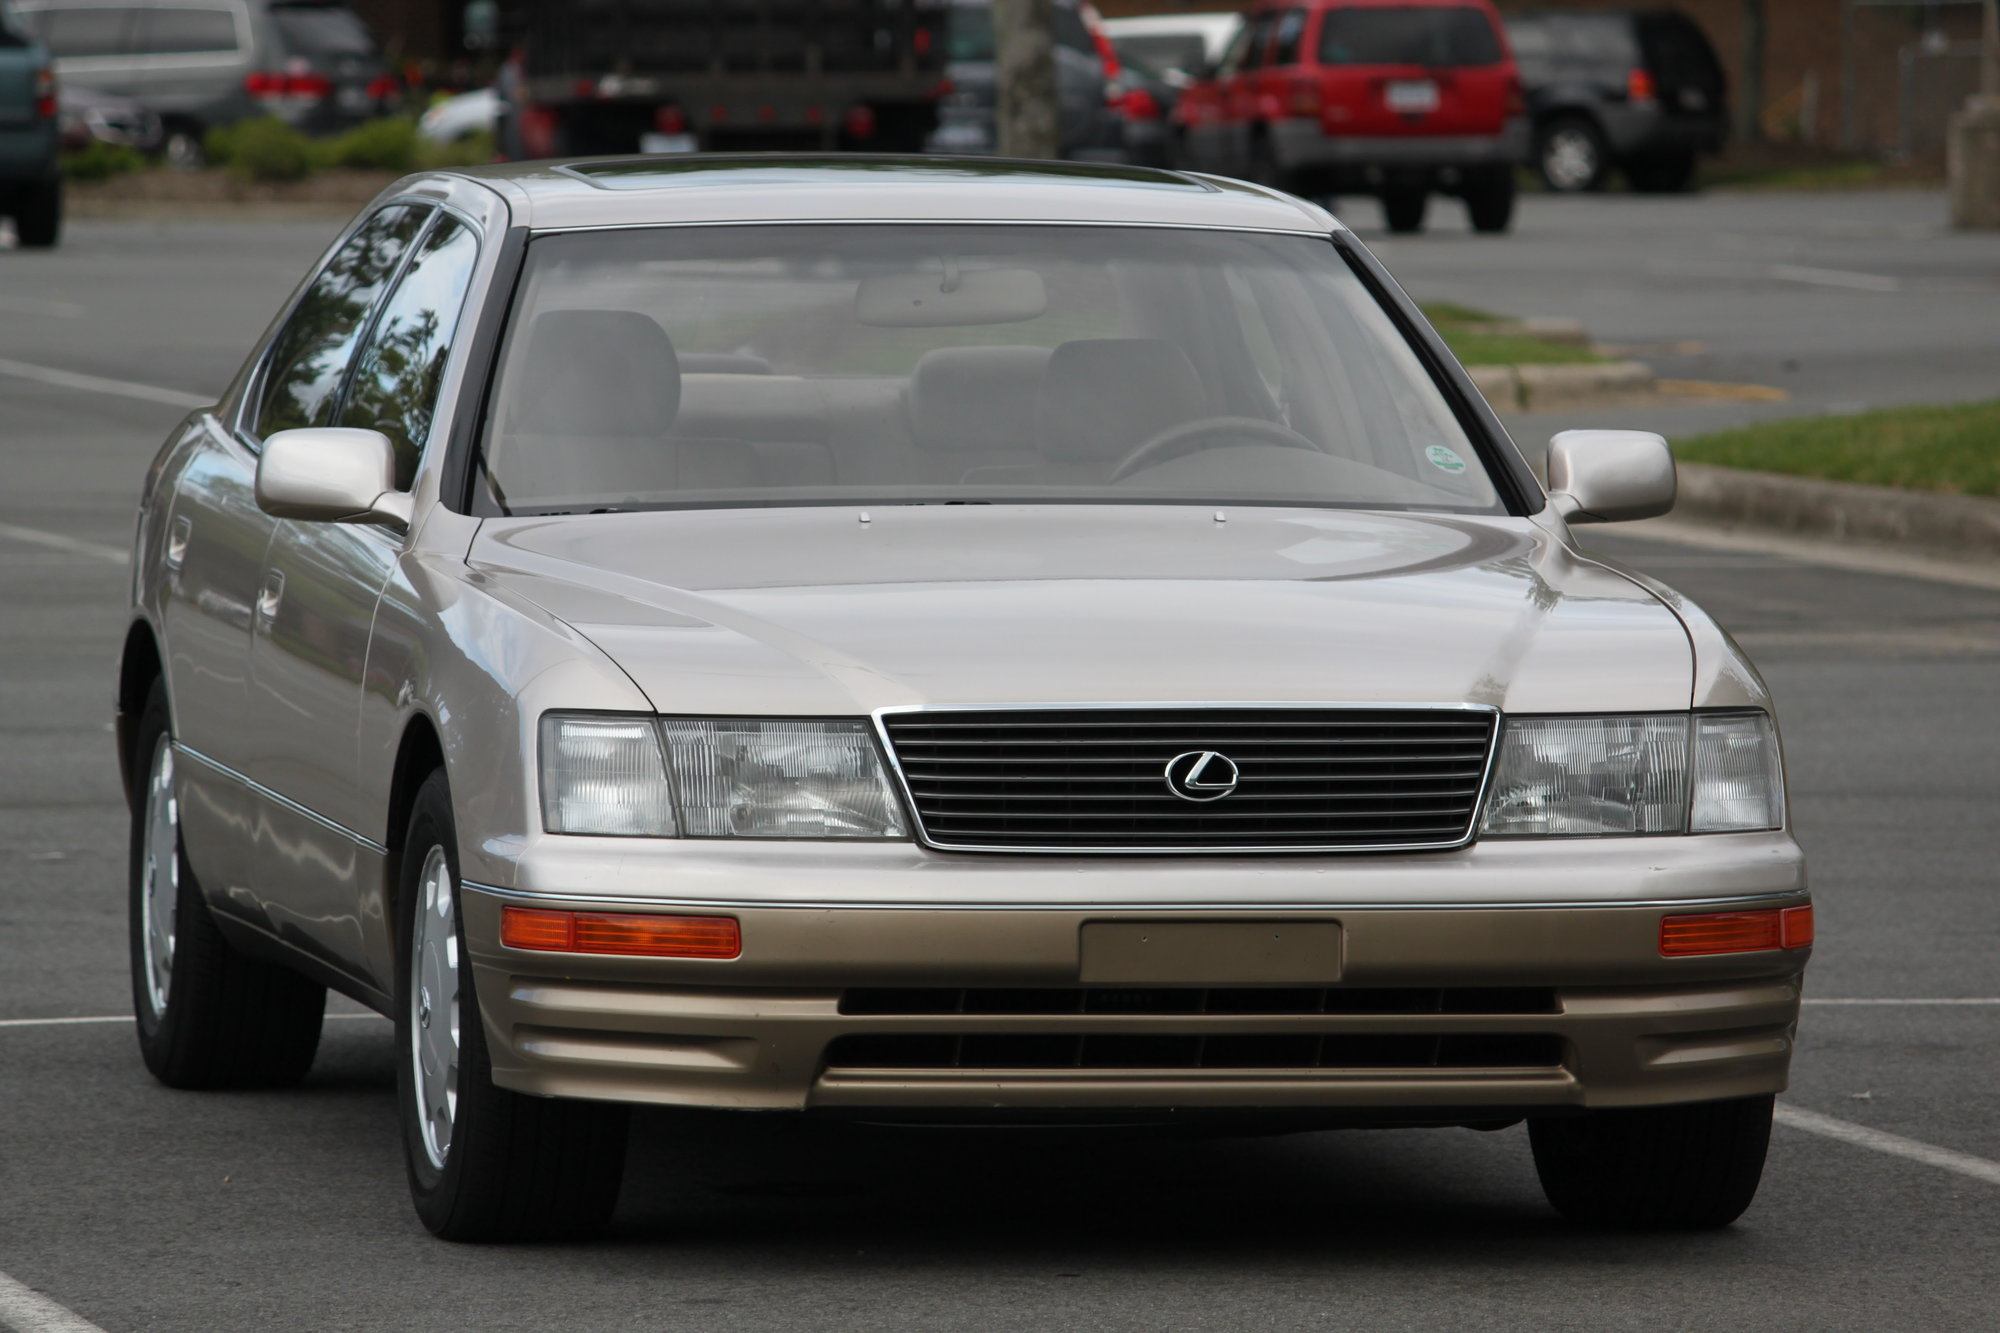 hight resolution of 1996 lexus ls400 with 64 000 miles